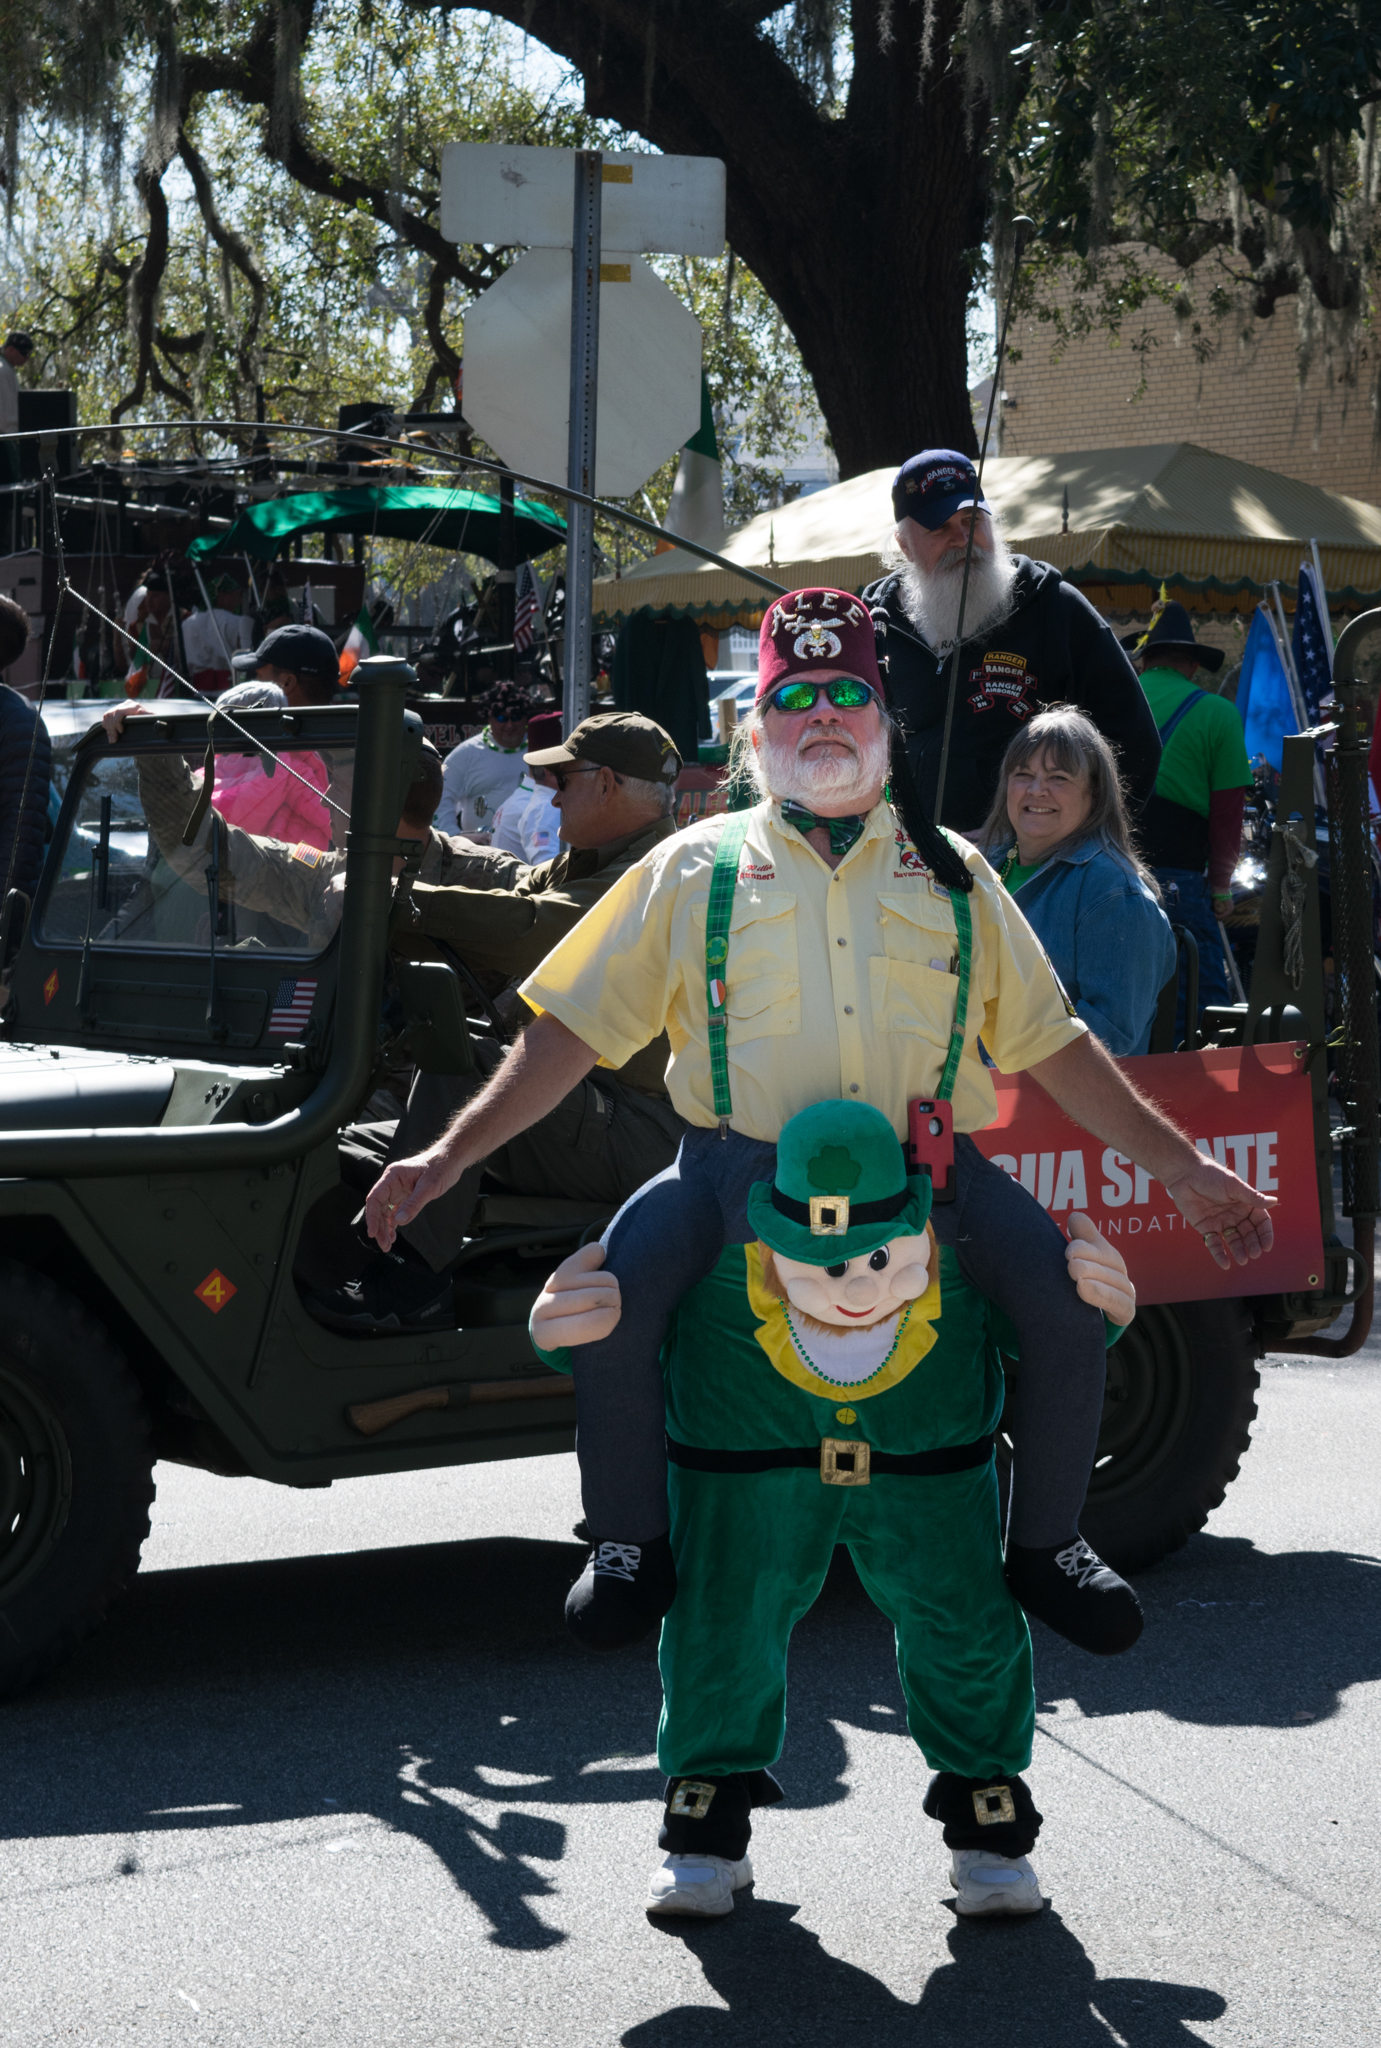 12-St Patricks Day 2017.jpg